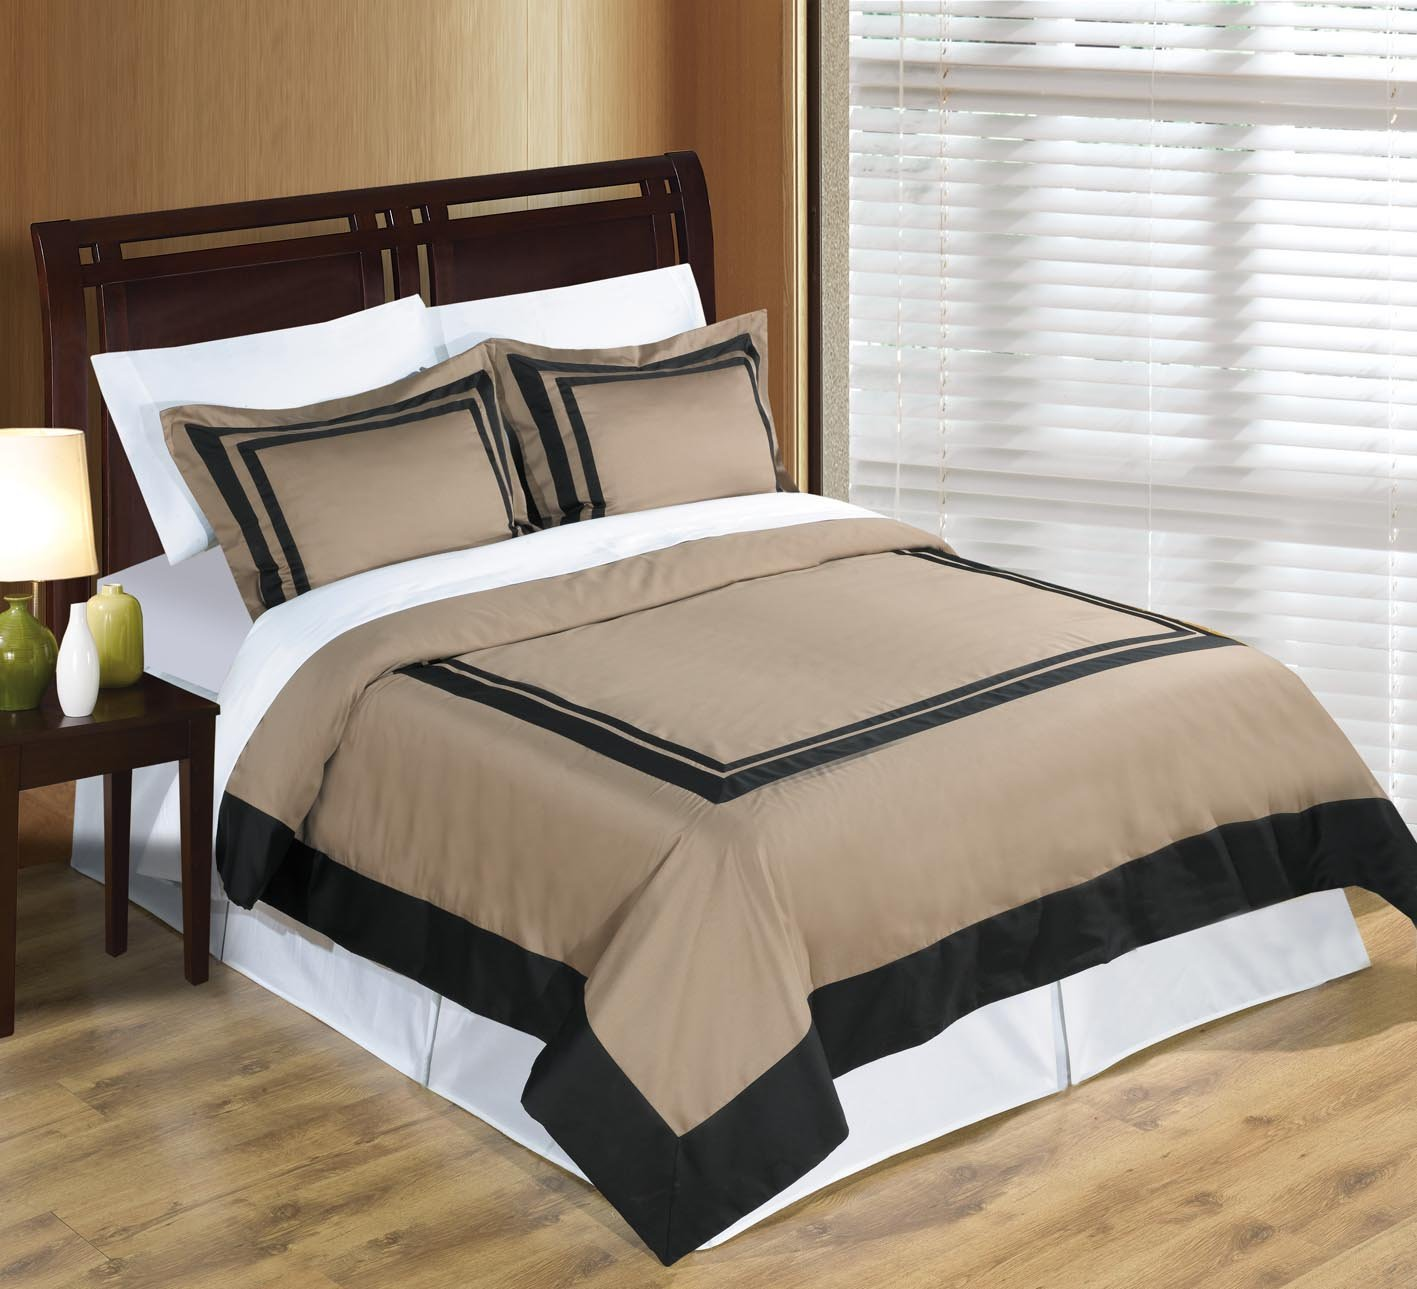 sheetsnthings 4PC Full/Queen size Taupe with Black Hotel bedding set including 3pc duvet cover set+ 1 pc Down Alternative Comforter at Sears.com